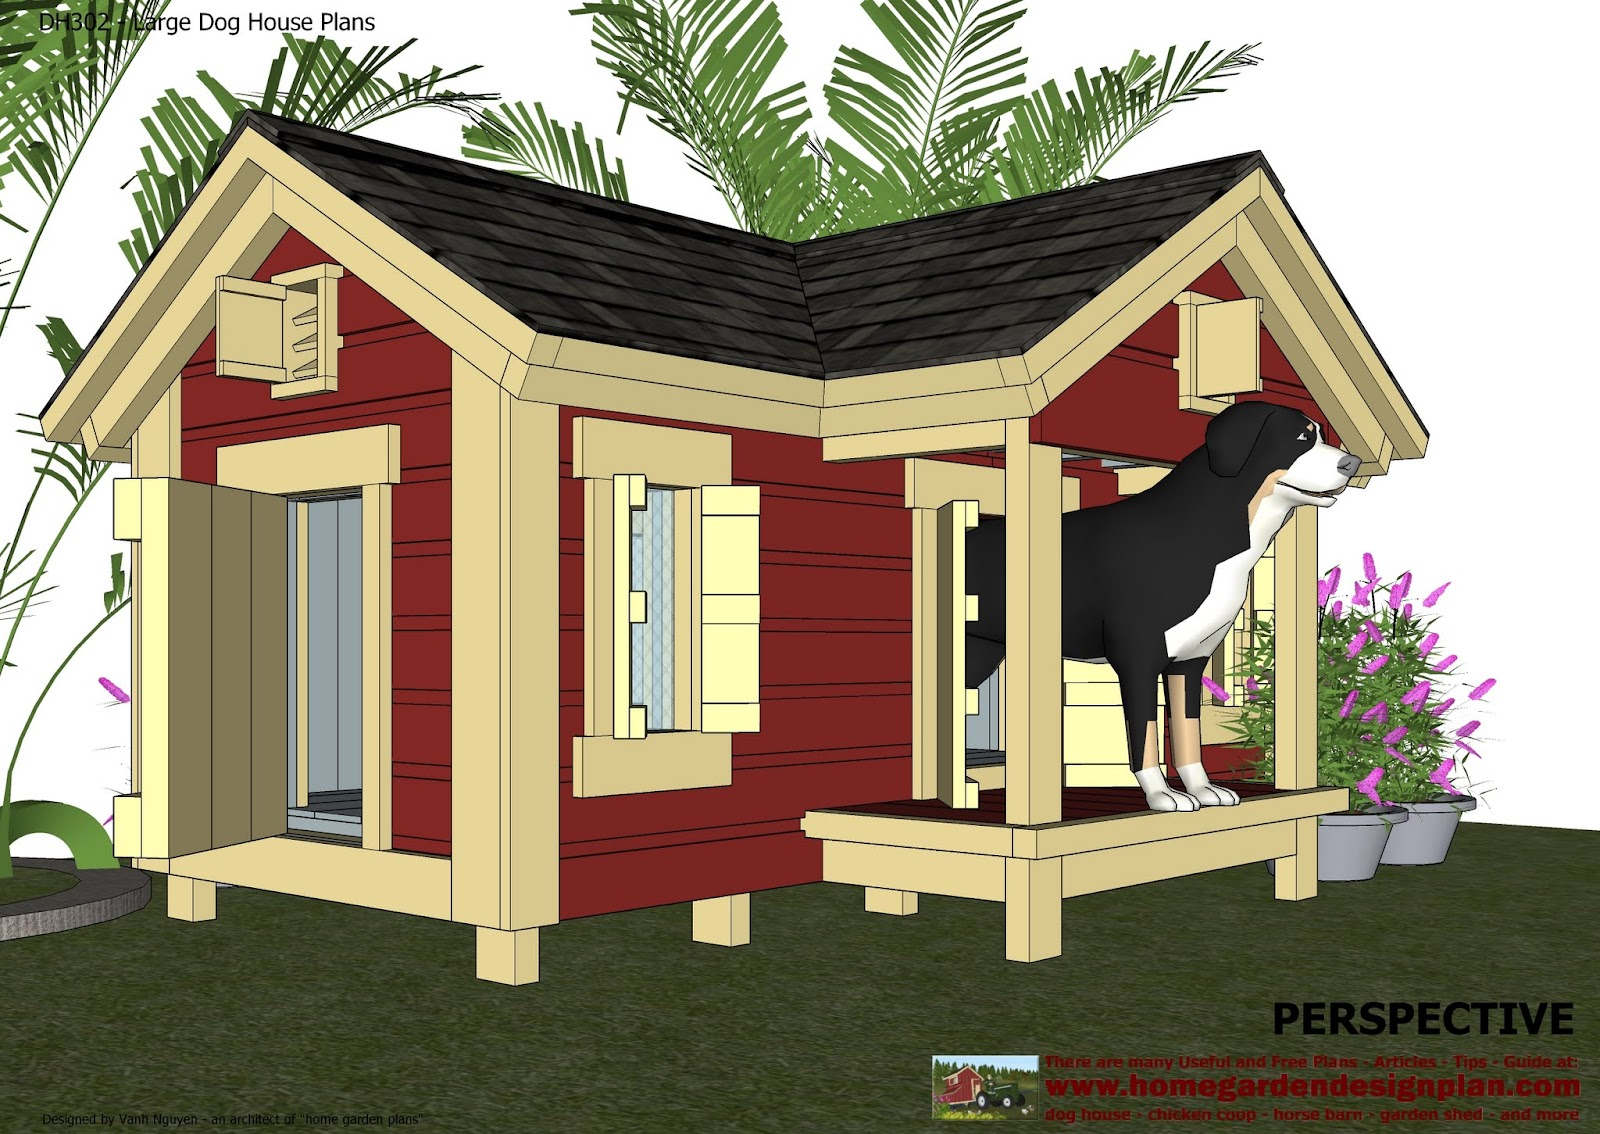 Insulated Dog House Plans Home Garden Plans Dh301